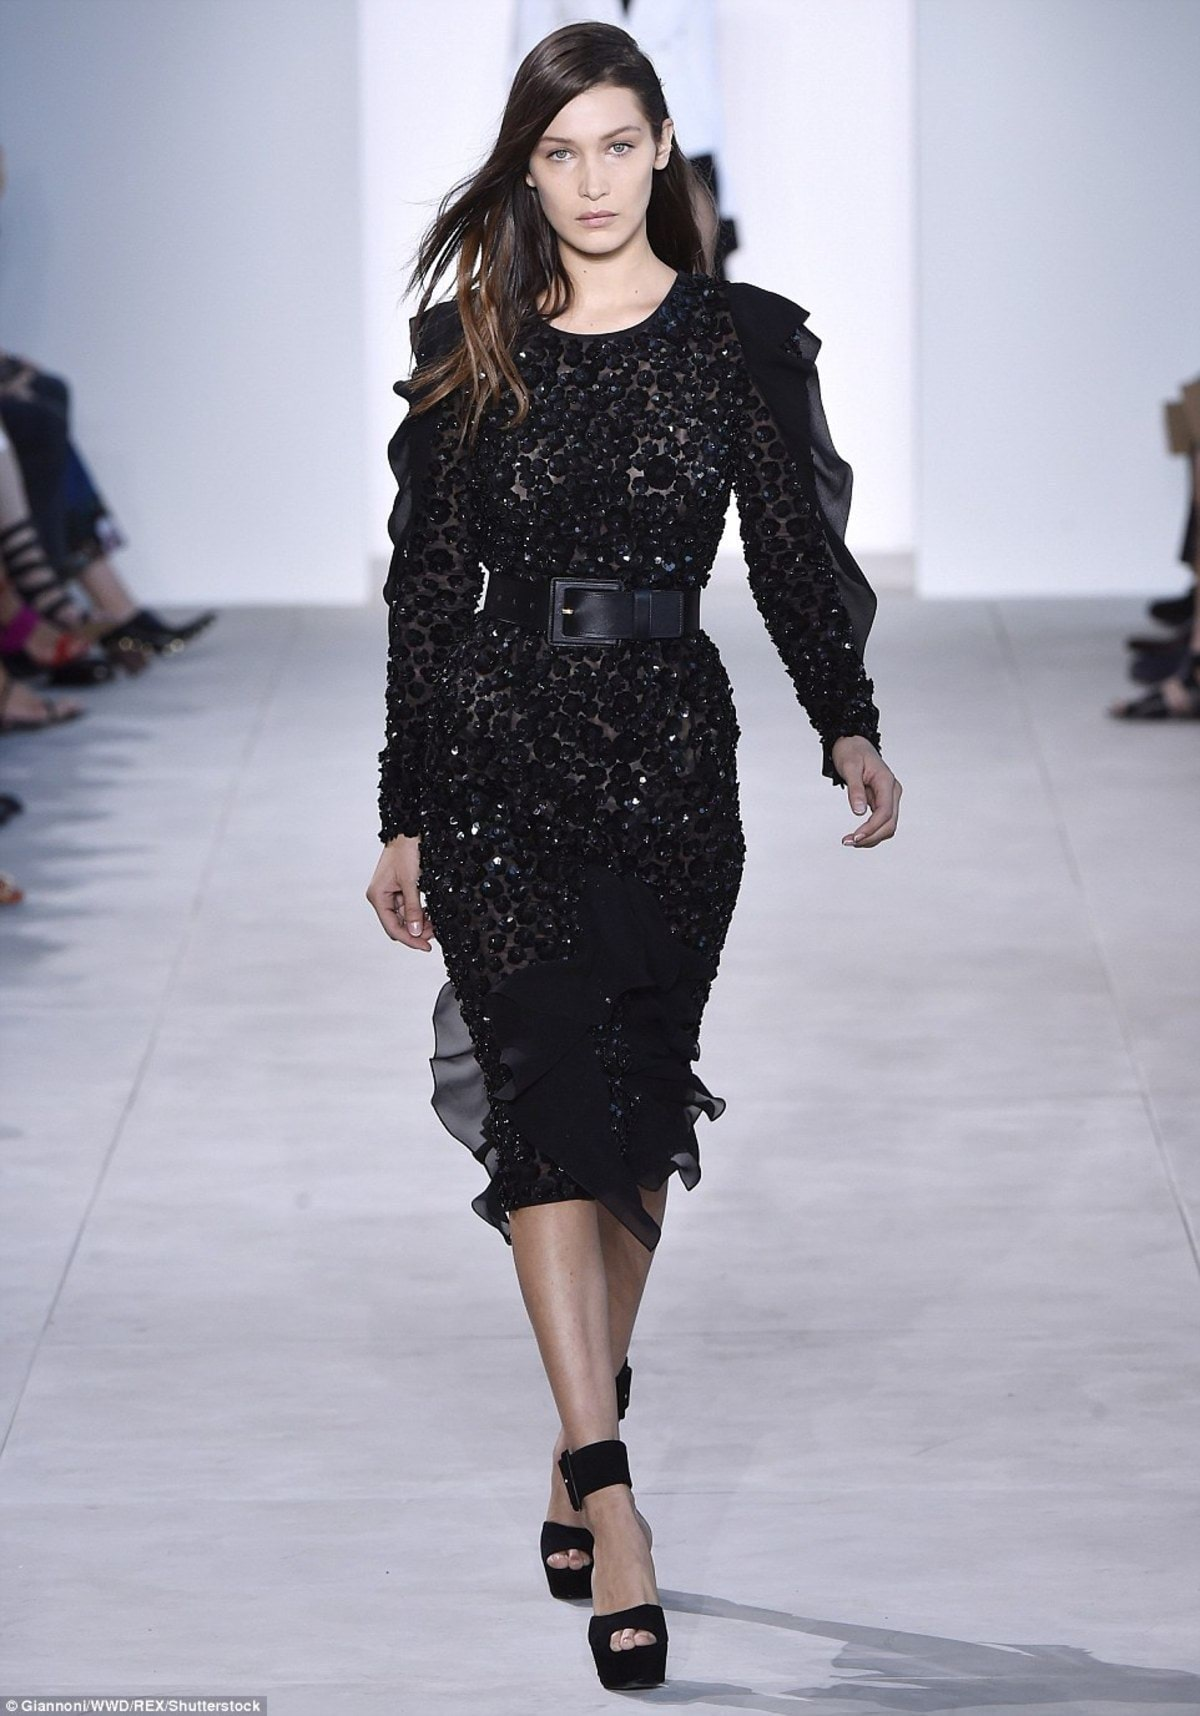 3859BCA100000578-3789419-Before_the_fall_The_teen_was_showing_off_a_black_sequined_dress-a-12_1473873111024